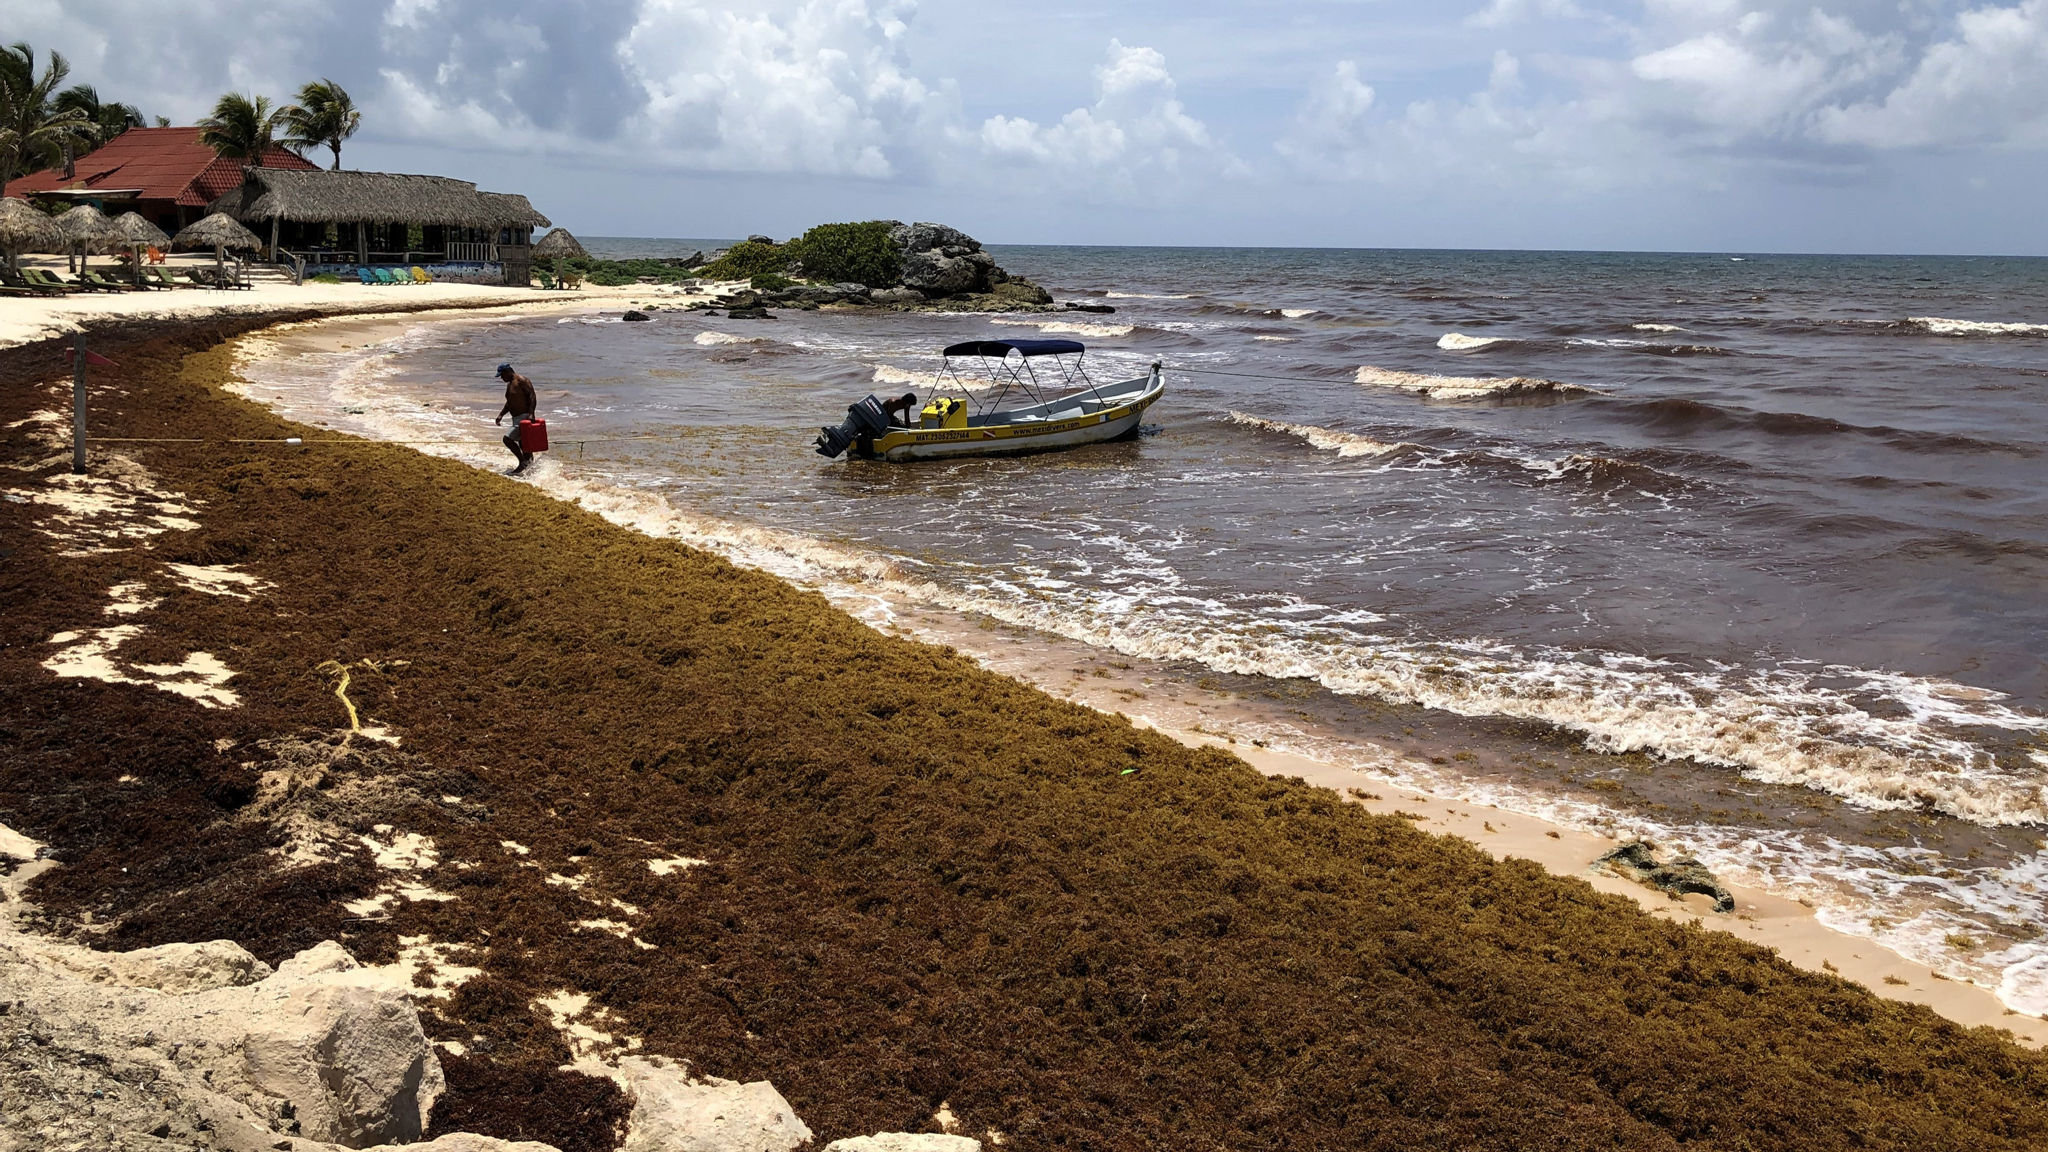 Mexican tourist industry counts cost as seaweed covers